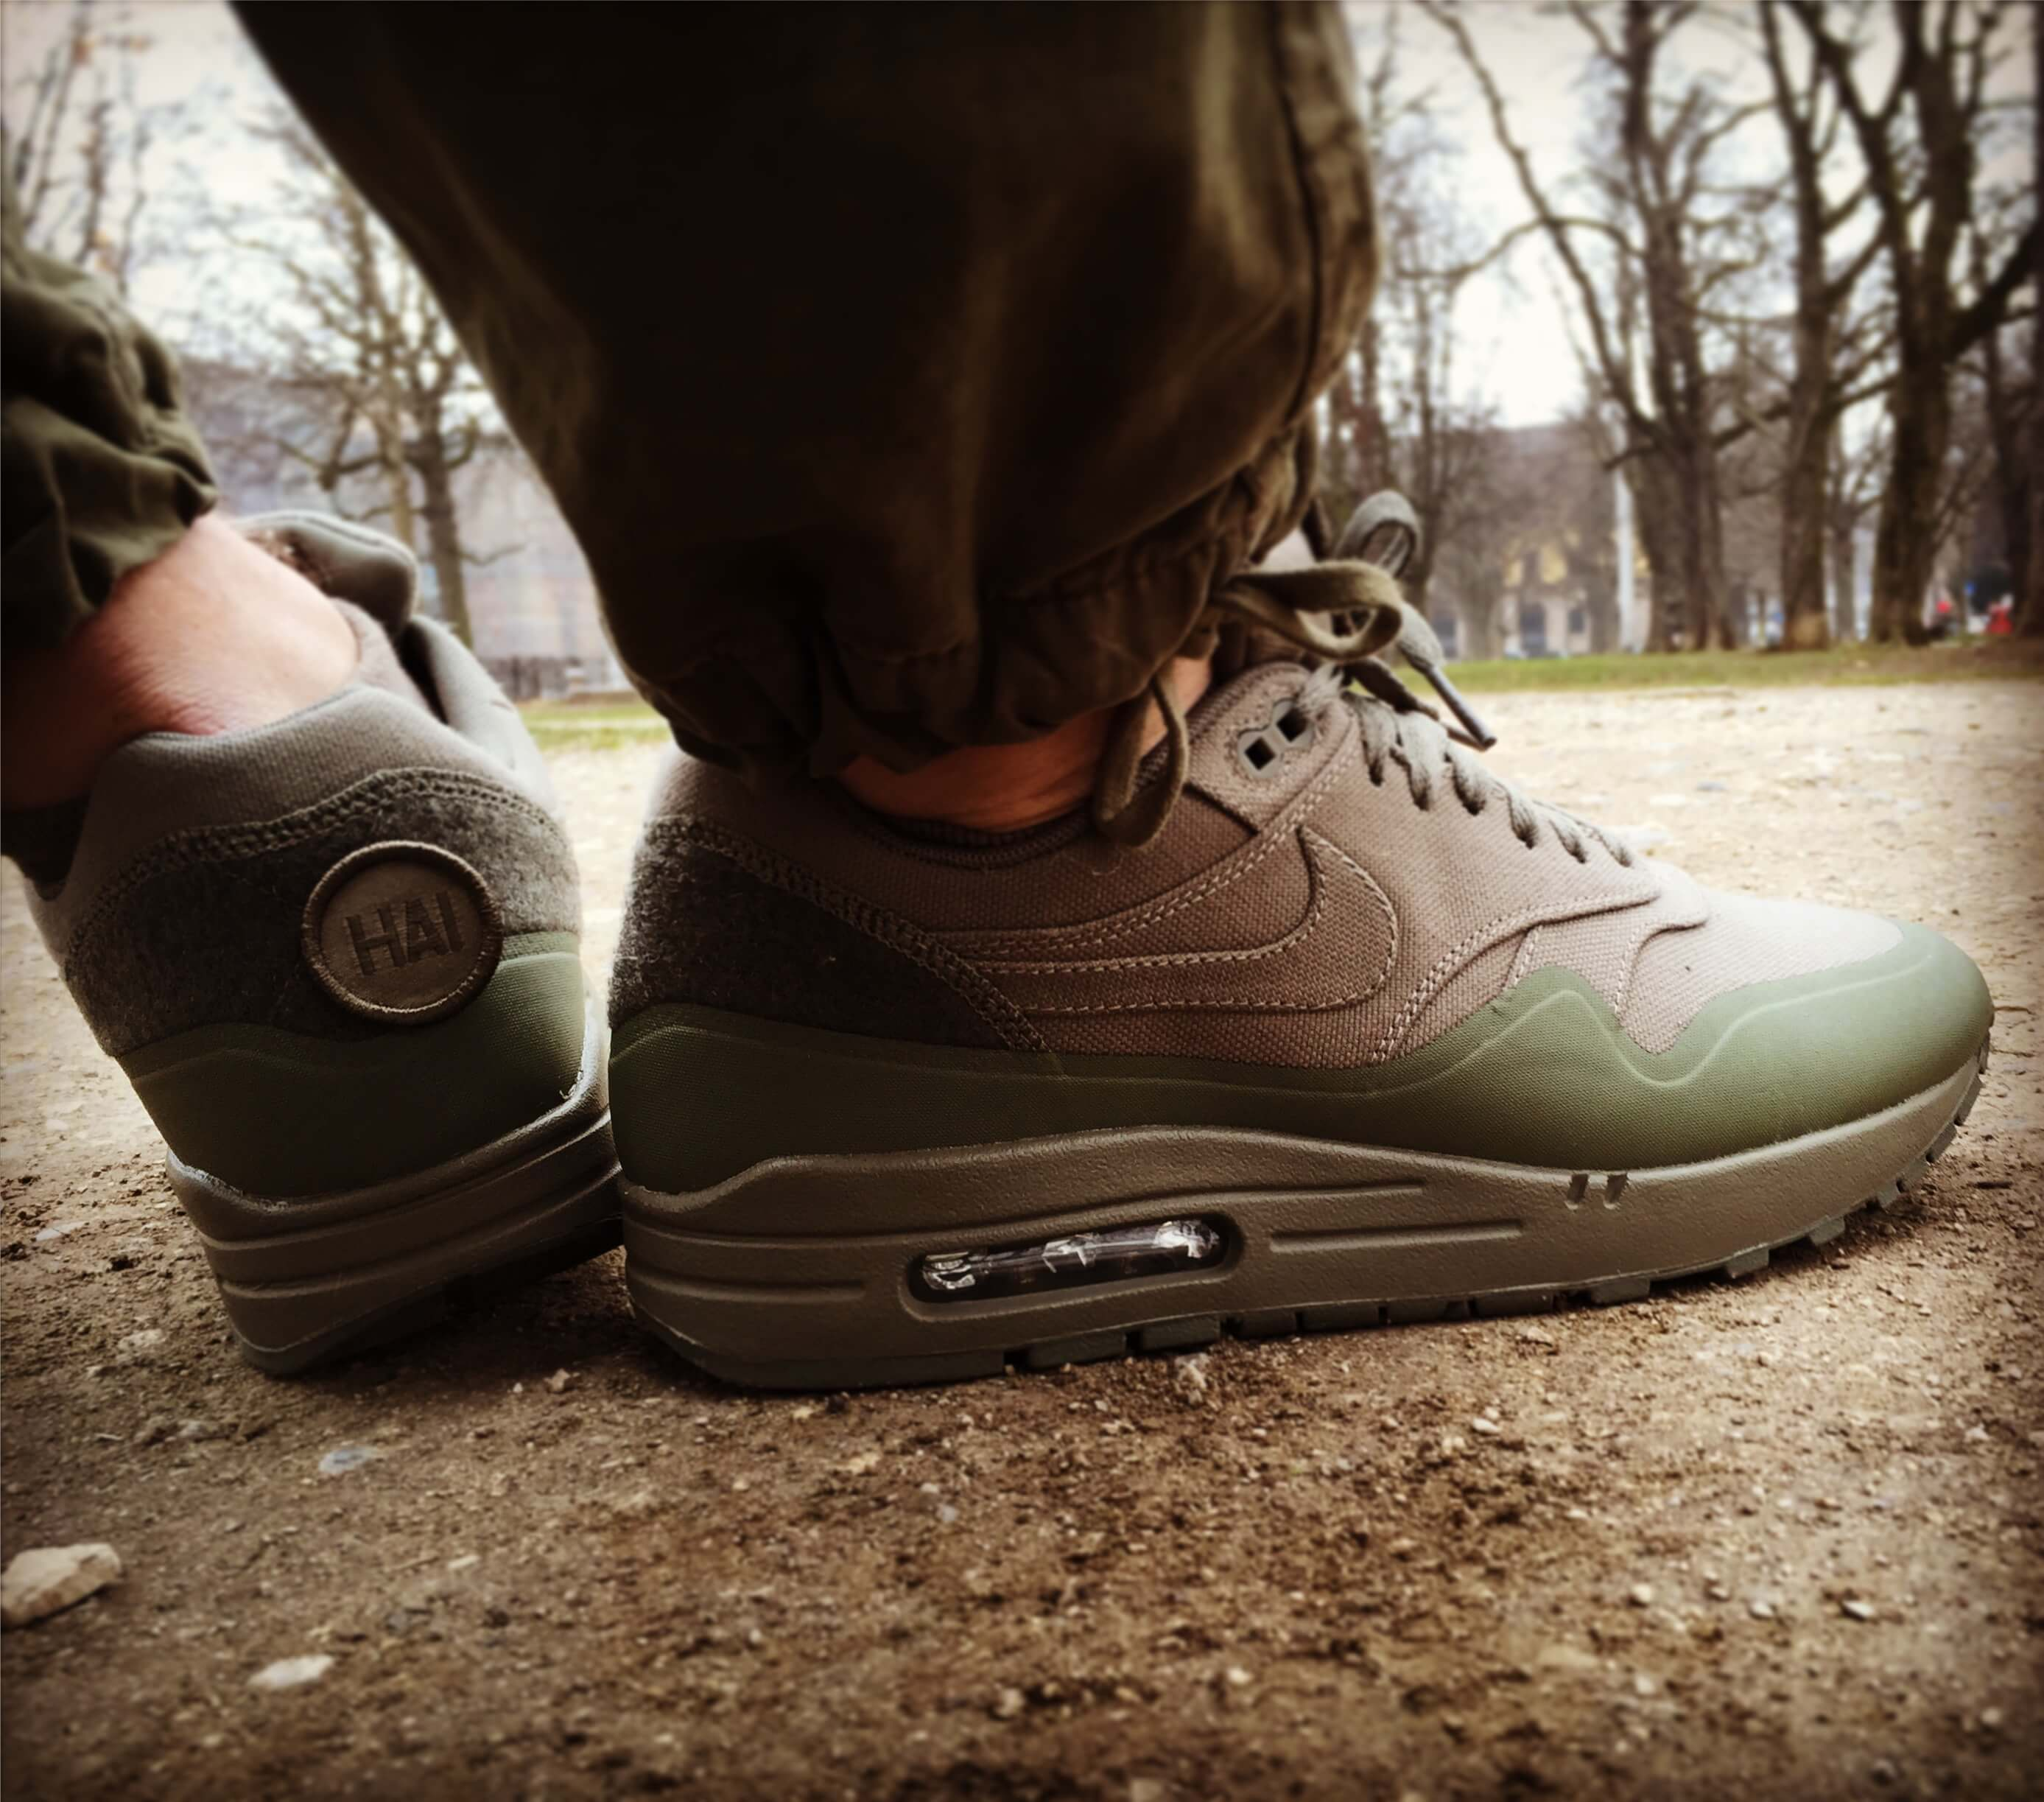 Nike-Air-Max-Patch-Pack-Rear-View-Benstah-Onfeet